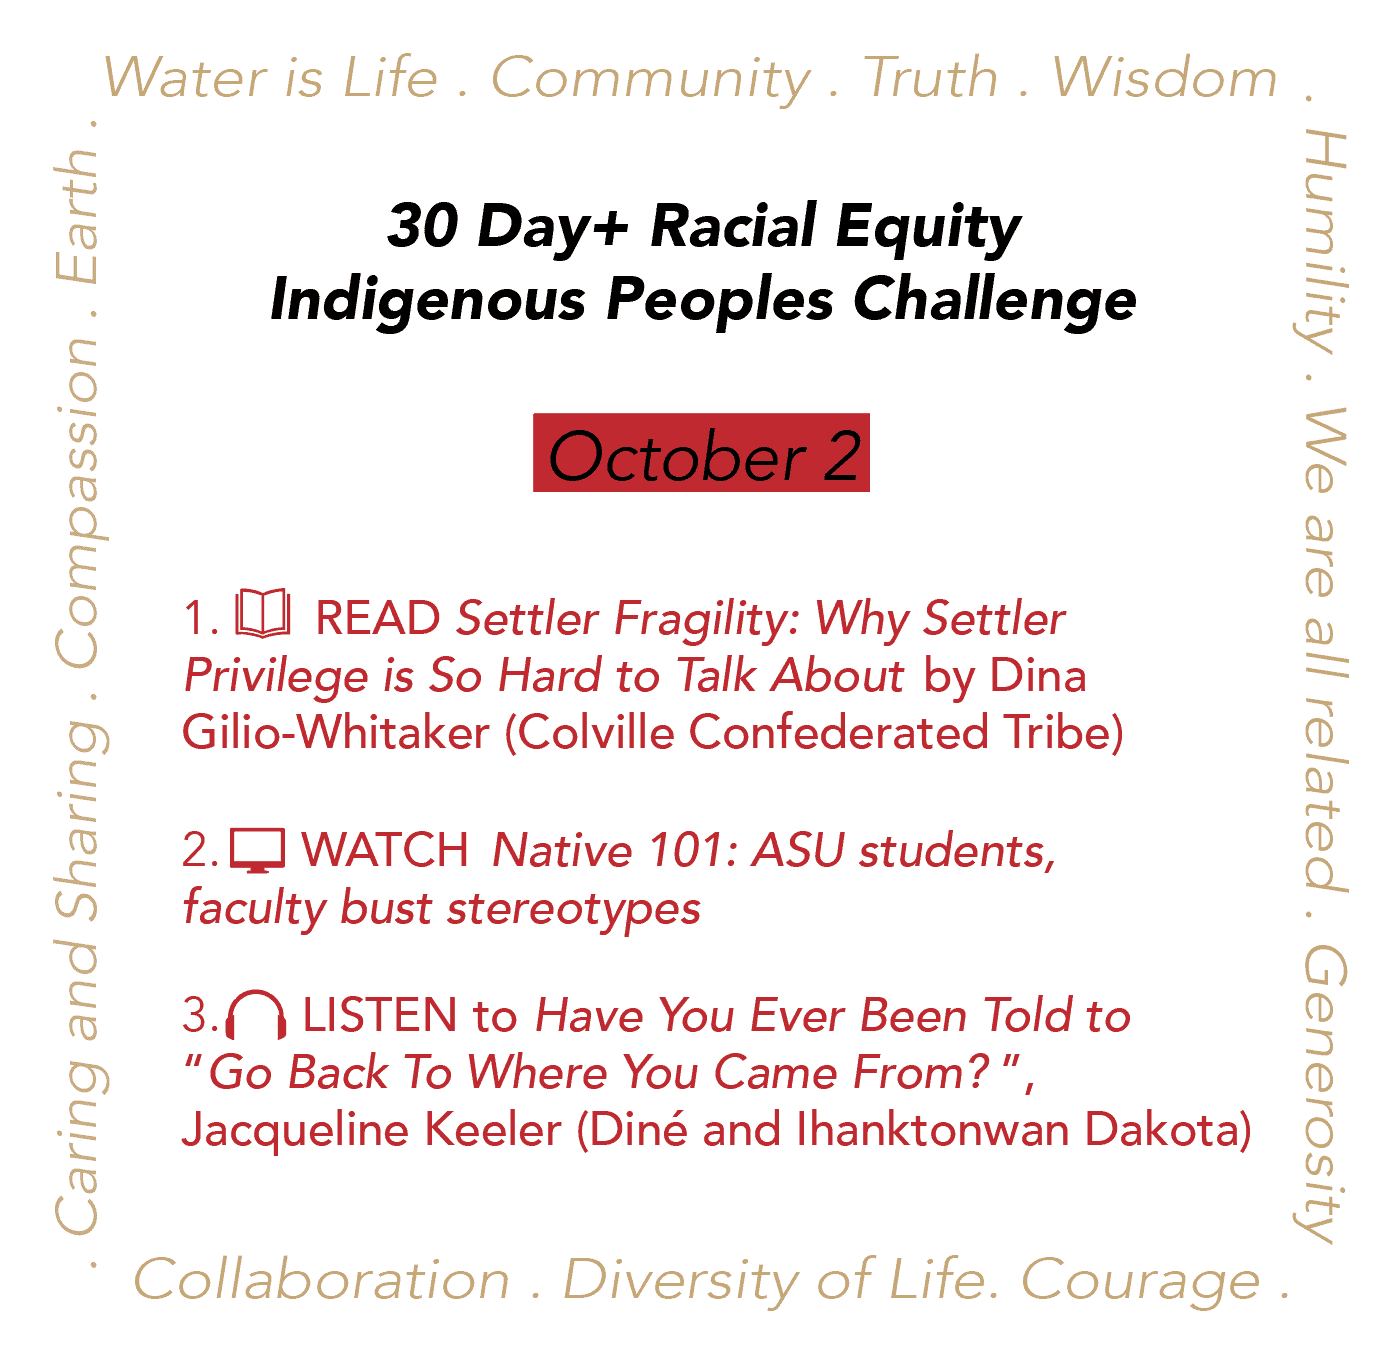 Day 2: Racial Equity Indigenous Peoples Day Challenge